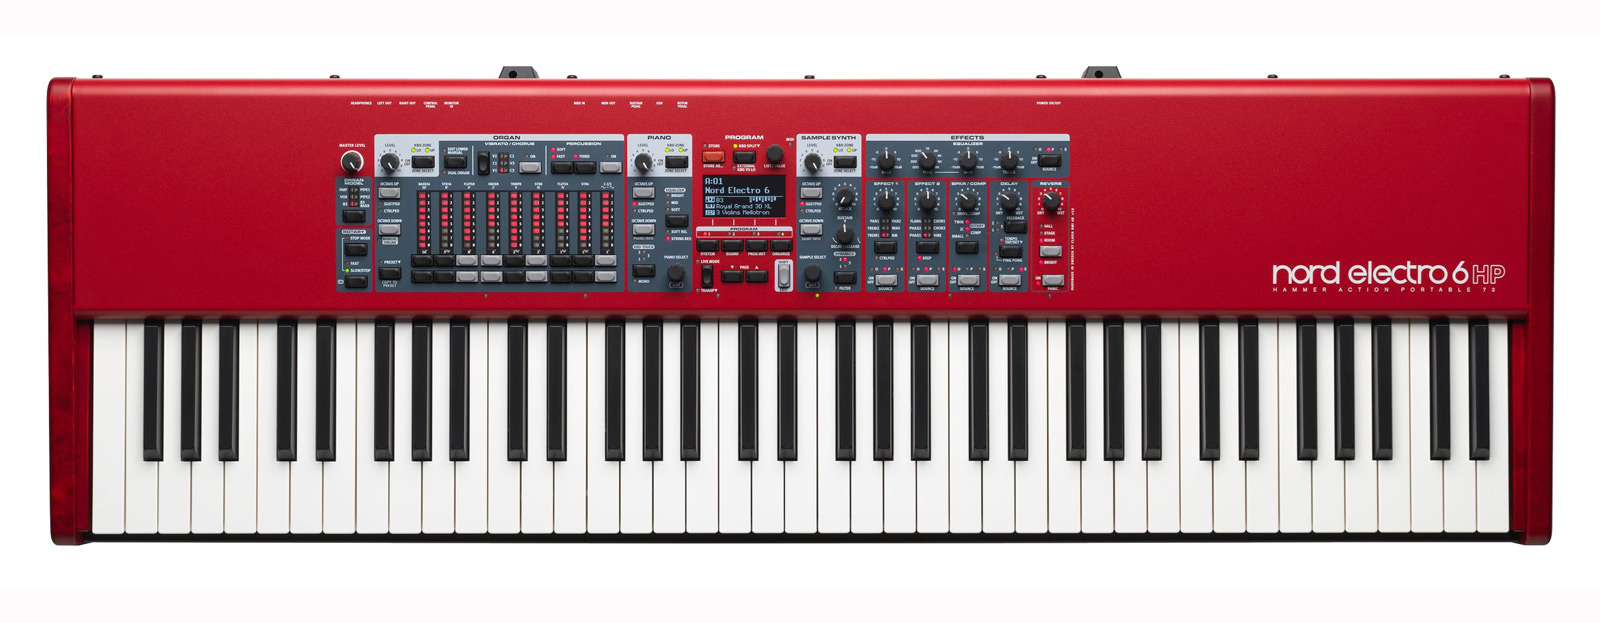 Nord Electro 6 HP stagepiano